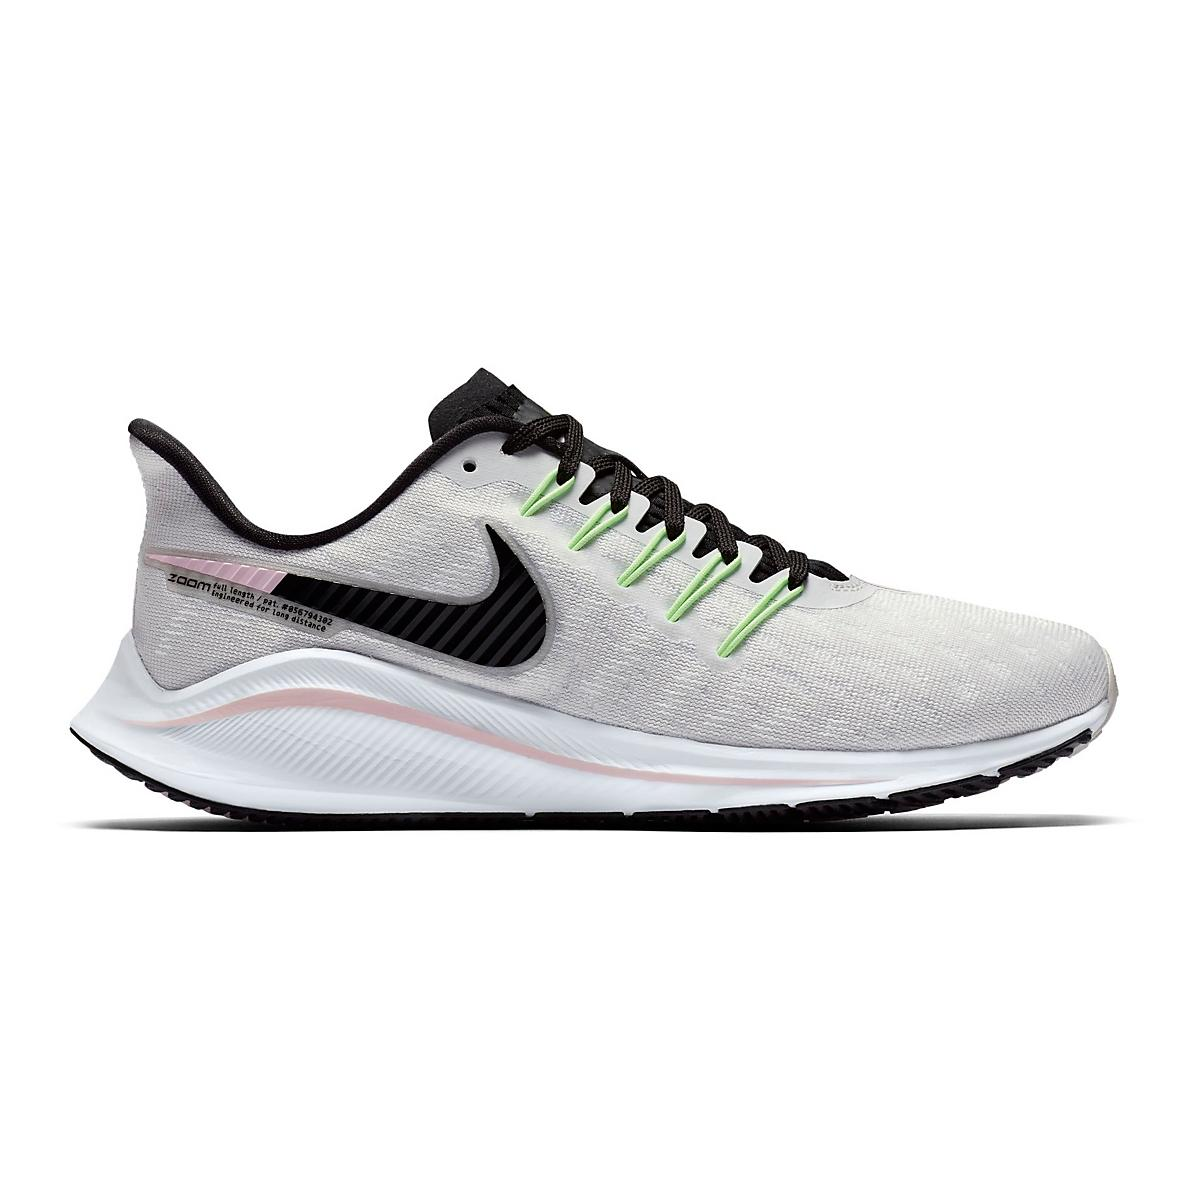 Womens Nike Air Zoom Vomero 14 Running Shoe at Road Runner Sports 8b80d6f5b